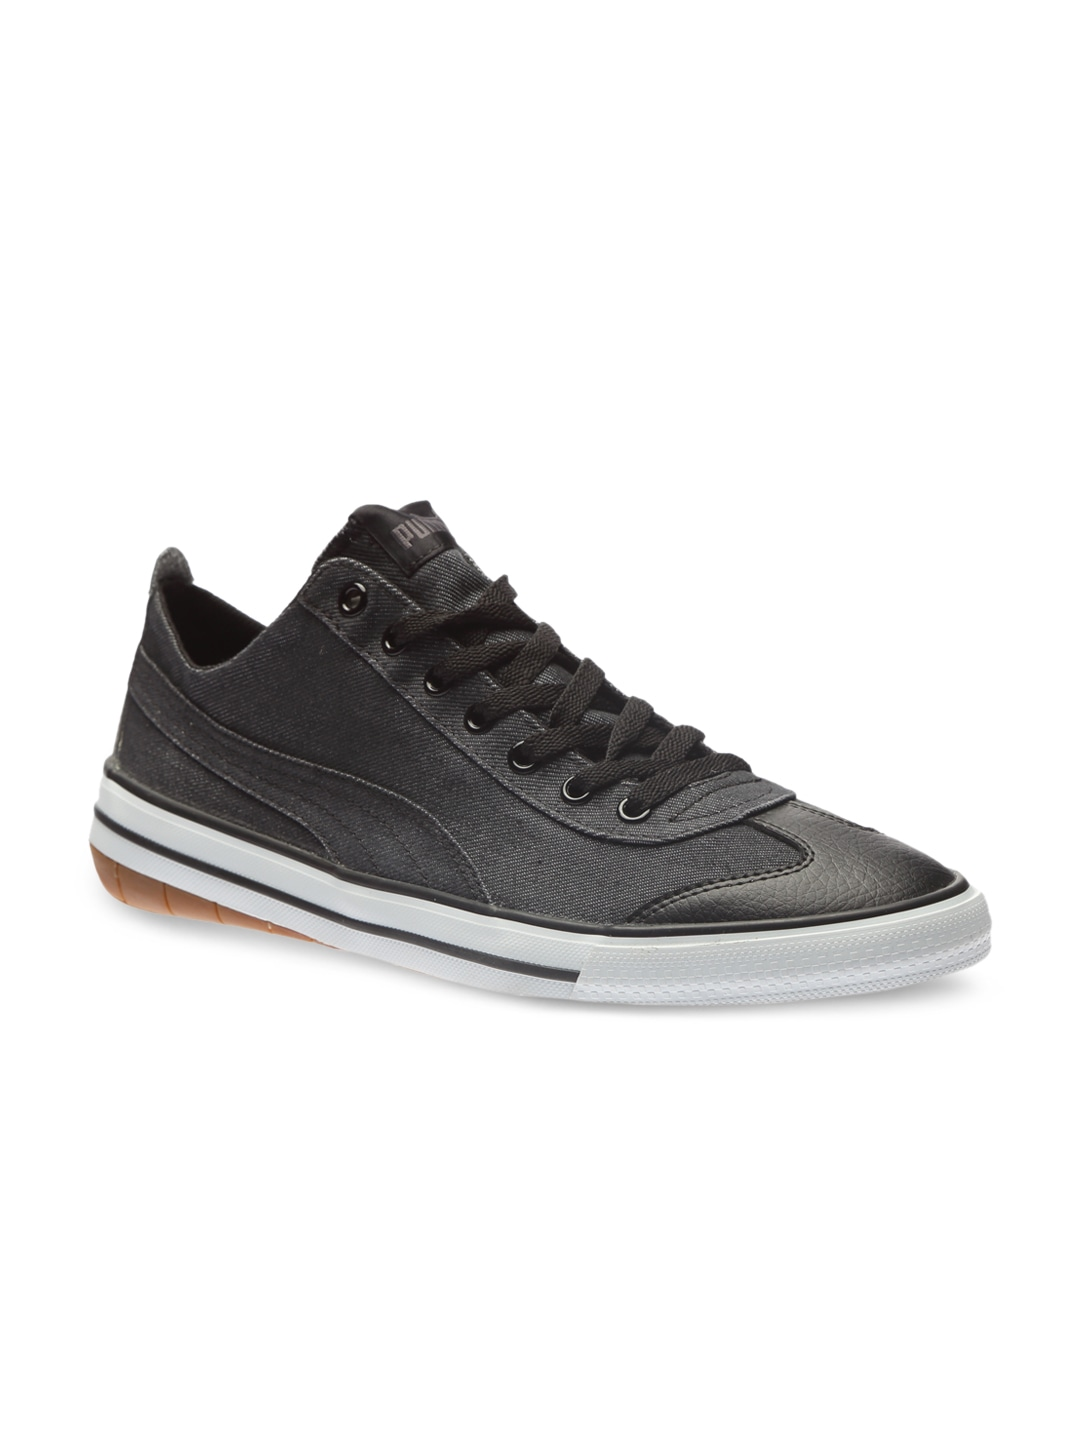 Puma Shoes For Men Casual